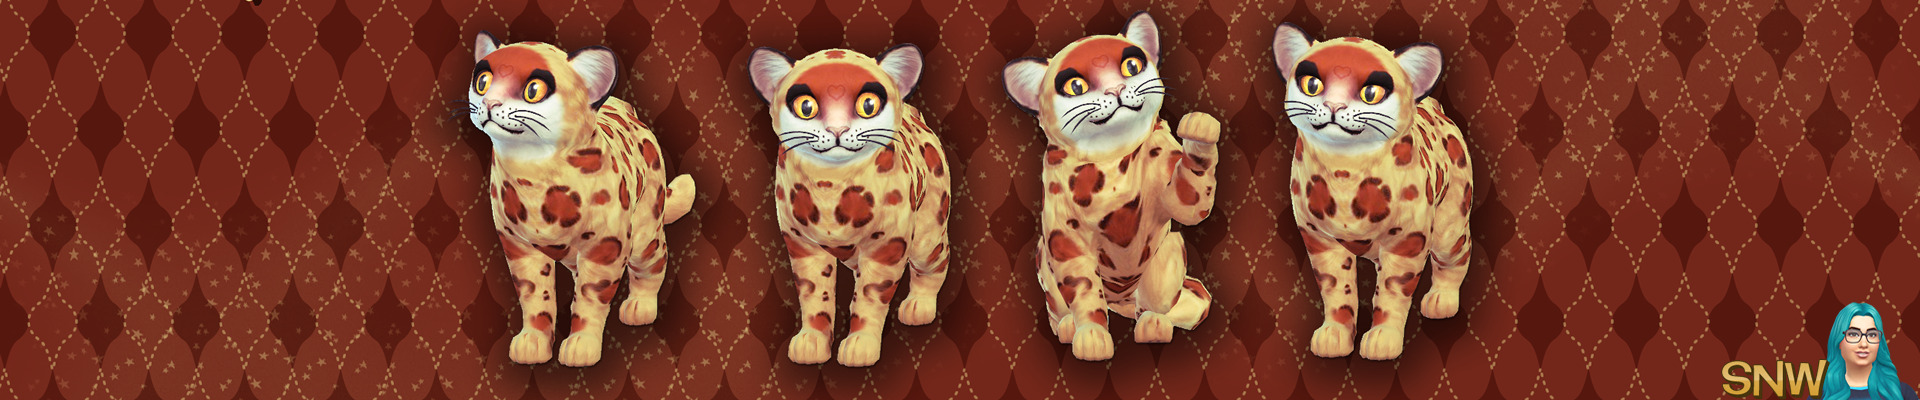 The Sims 4 Cats Dogs Happy Simming Junior The Cute Leopard Cub